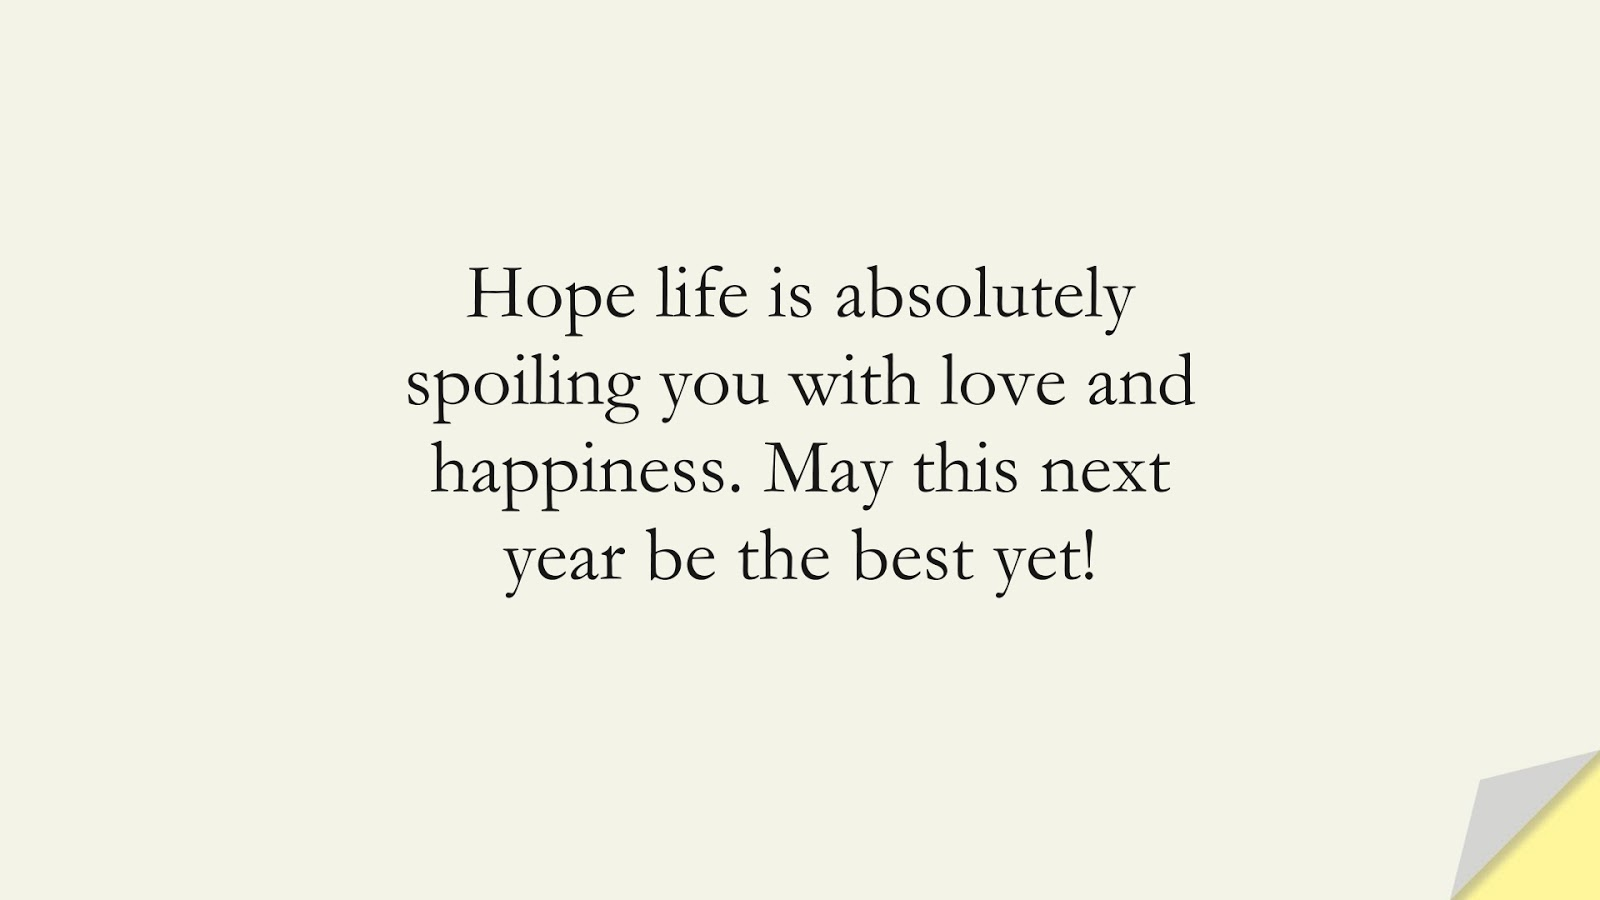 Hope life is absolutely spoiling you with love and happiness. May this next year be the best yet!FALSE